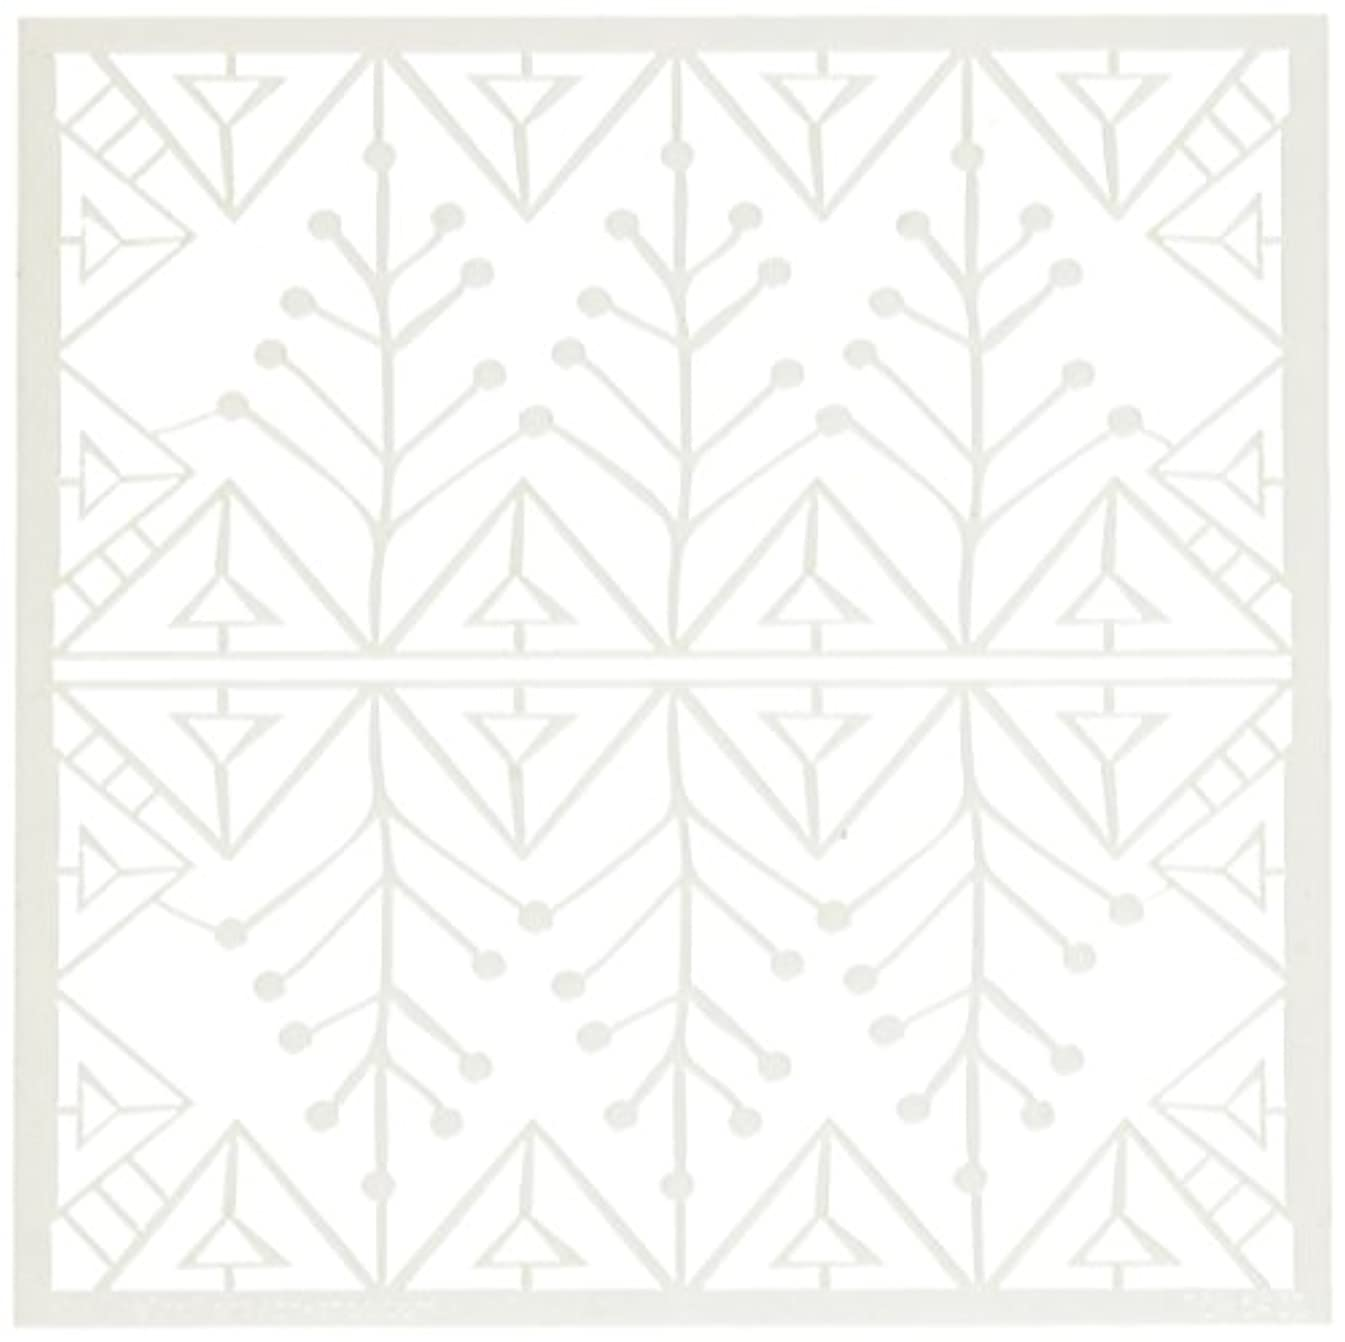 CRAFTERS WORKSHOP TCW6X6-543 Snow Branch Template, 6 by 6